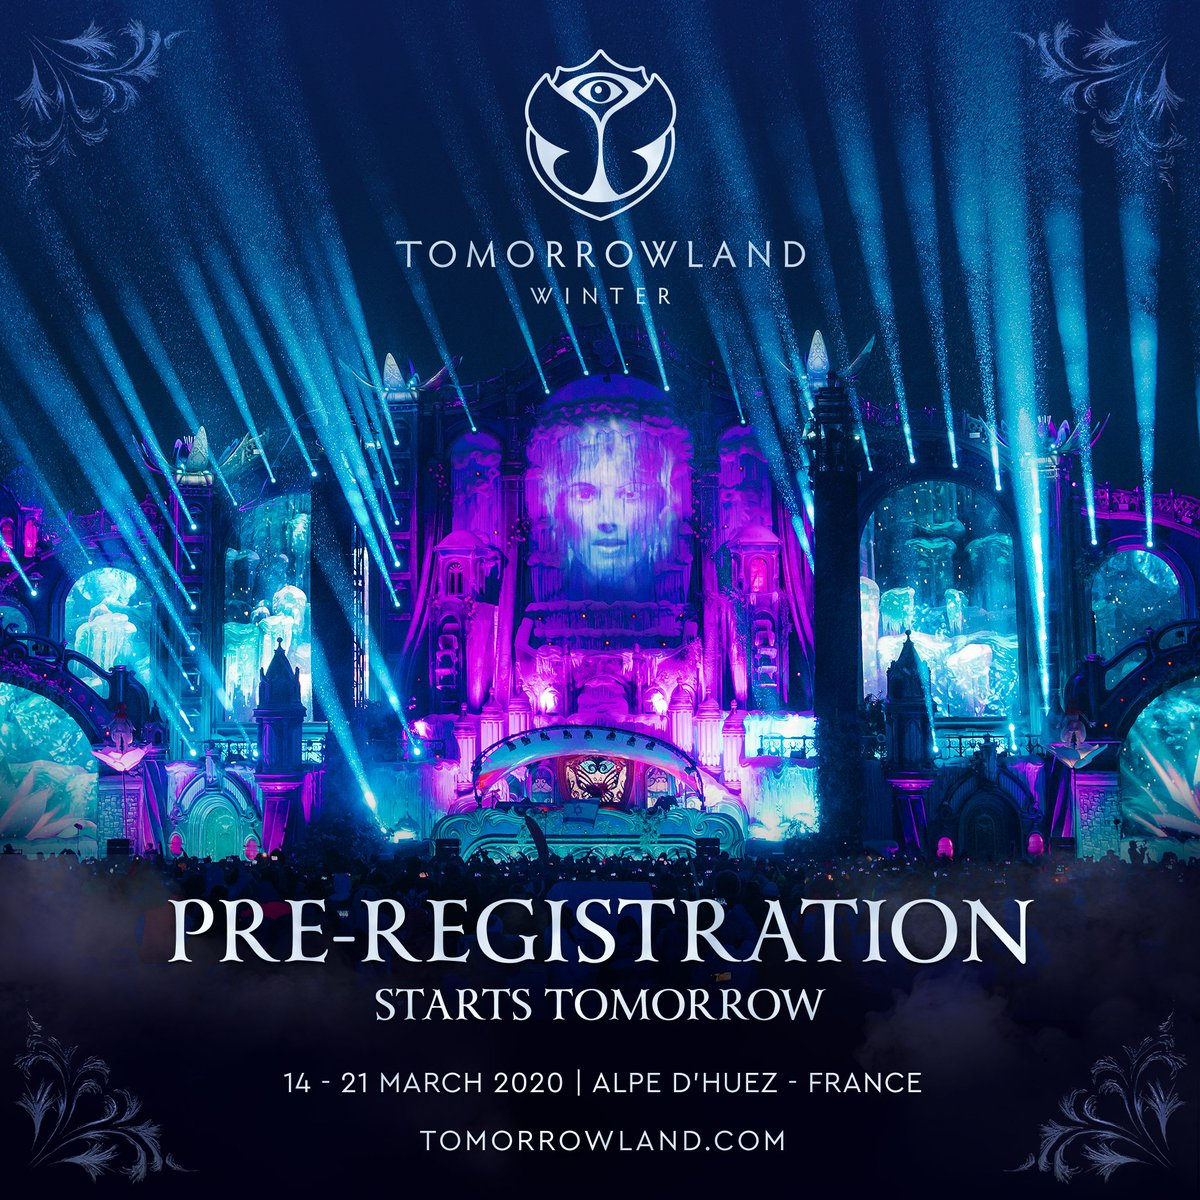 Tomorrowland Winter on Twitter: